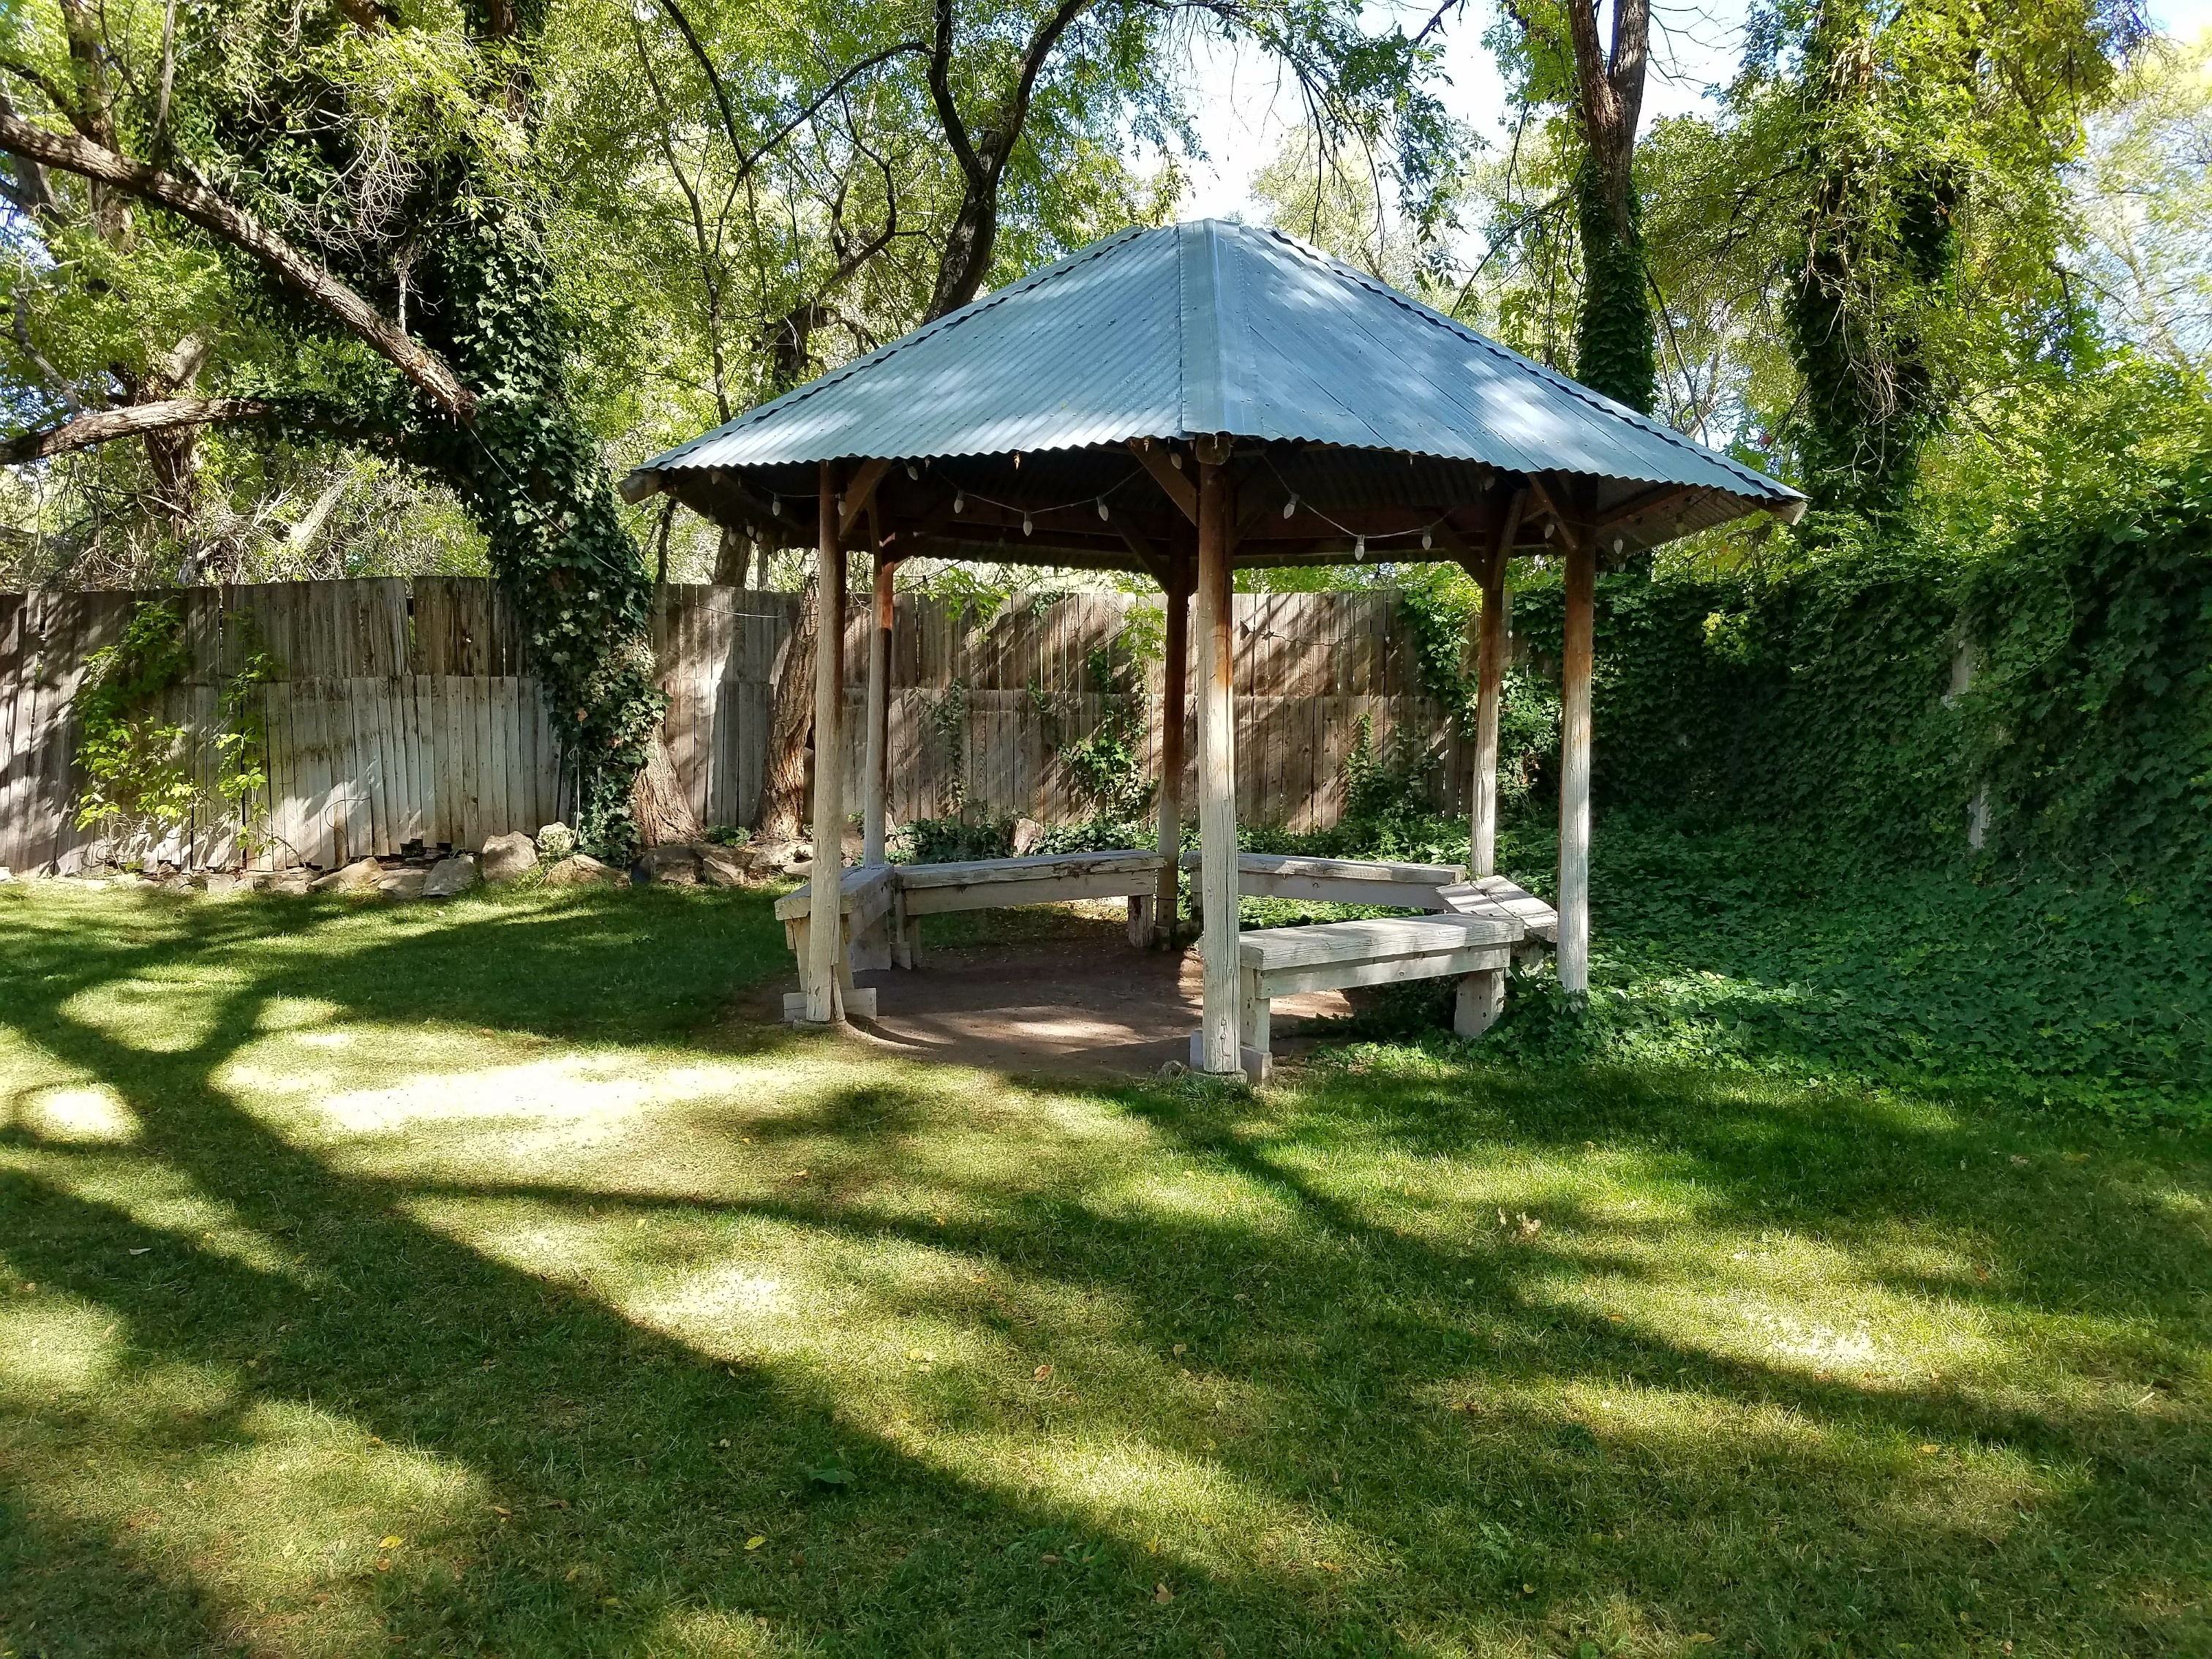 Old Town Farm Gazebo